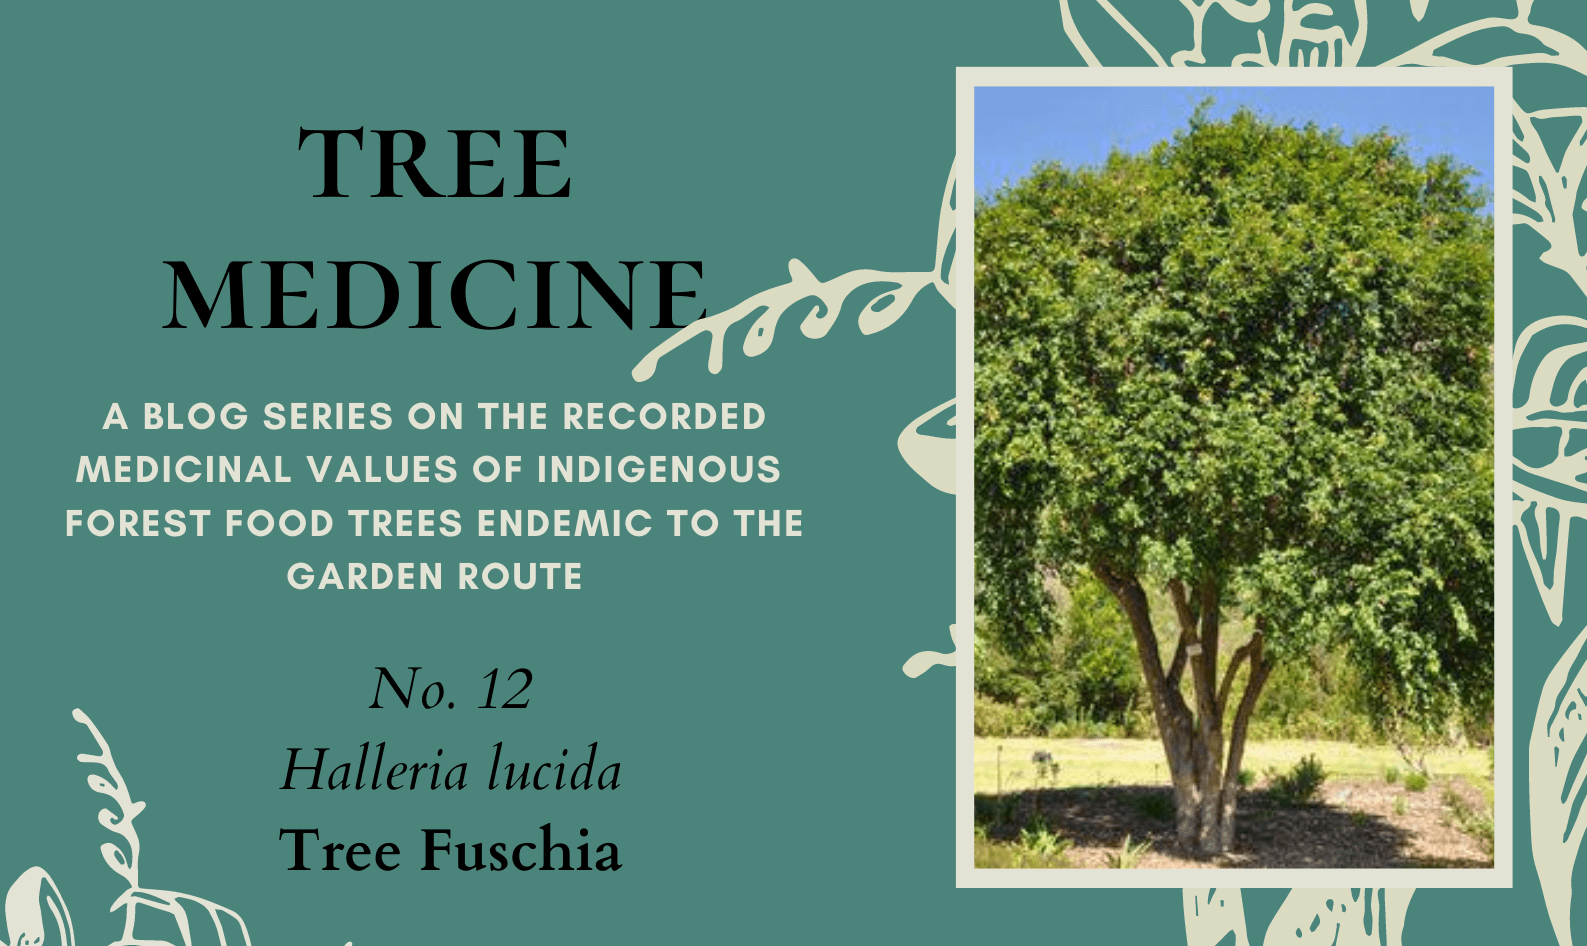 Tree Medicines of the Garden Route - Tree Fuchsia - Precious Tree Project